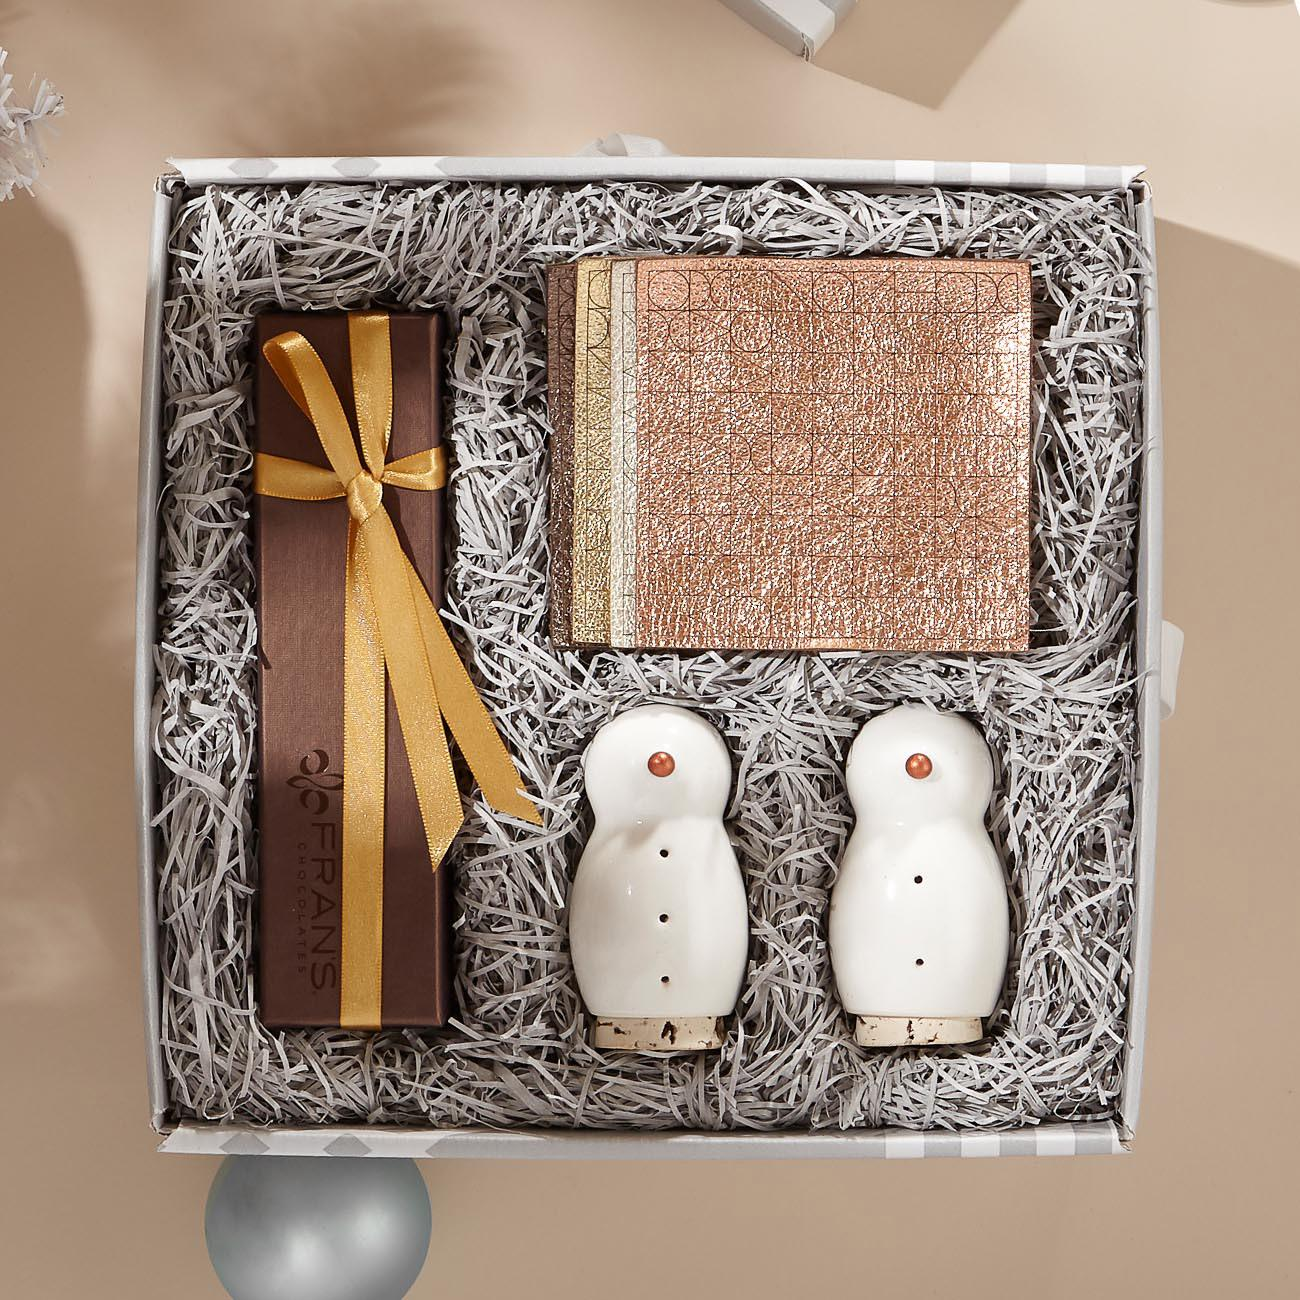 Seattle's Knack has amazing hostess sets, ready to go! A guaranteed favorite is their Winter's Glow Gift Set which contains 4 metallic leather coasters paired with a set of ceramic snowman salt and pepper shakers and a box of Fran's Chocolate's signature salted caramels. This sure-fire hostess gift  is one that will get you invited over again and again. (Image: Knack)<p></p>